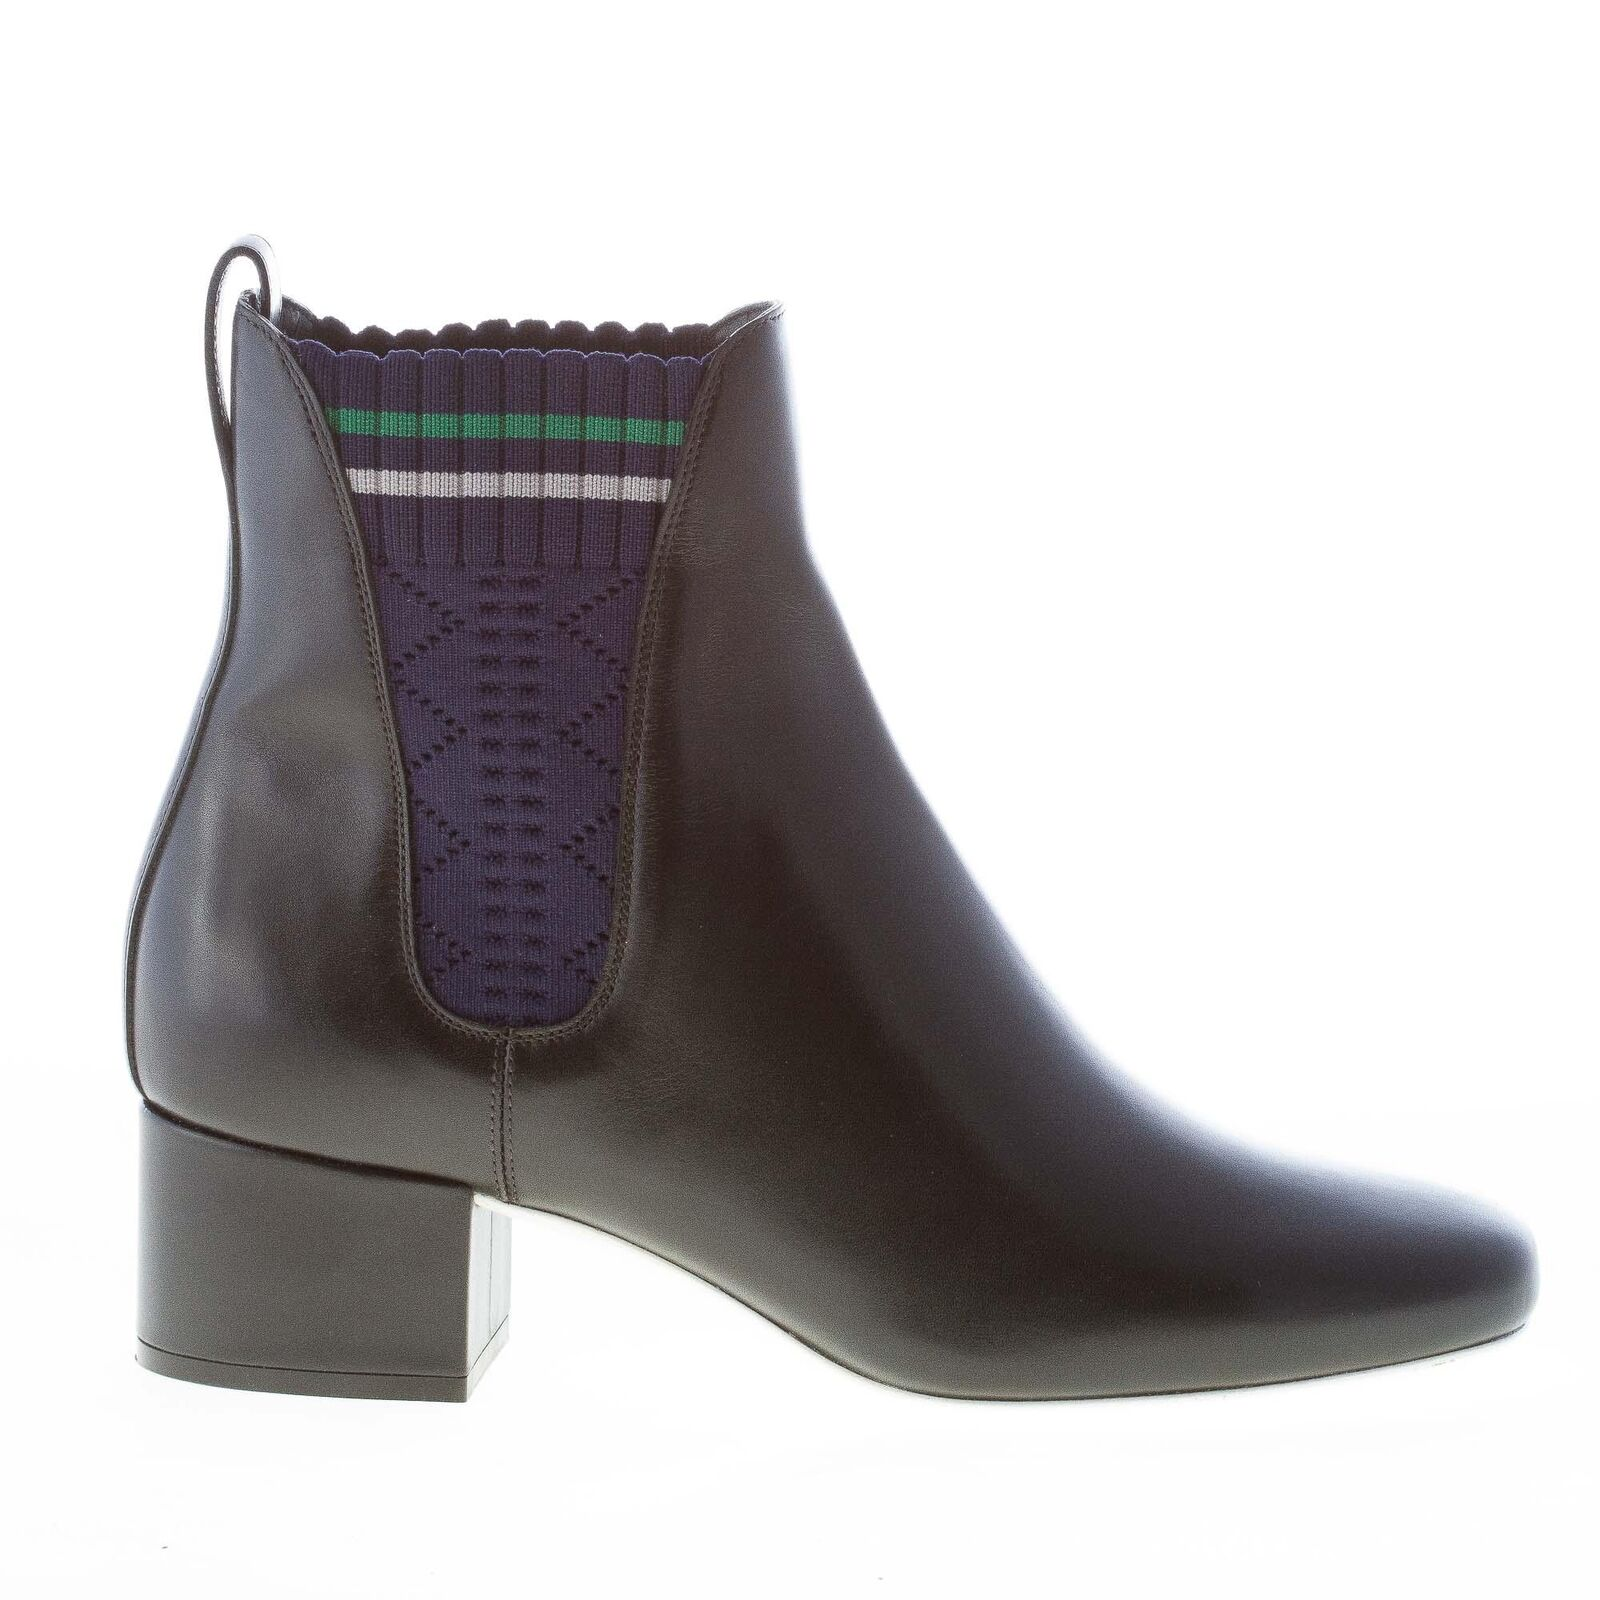 FENDI women shoes Black leather Chelsea boot blue stretch fabric bands 8T6598